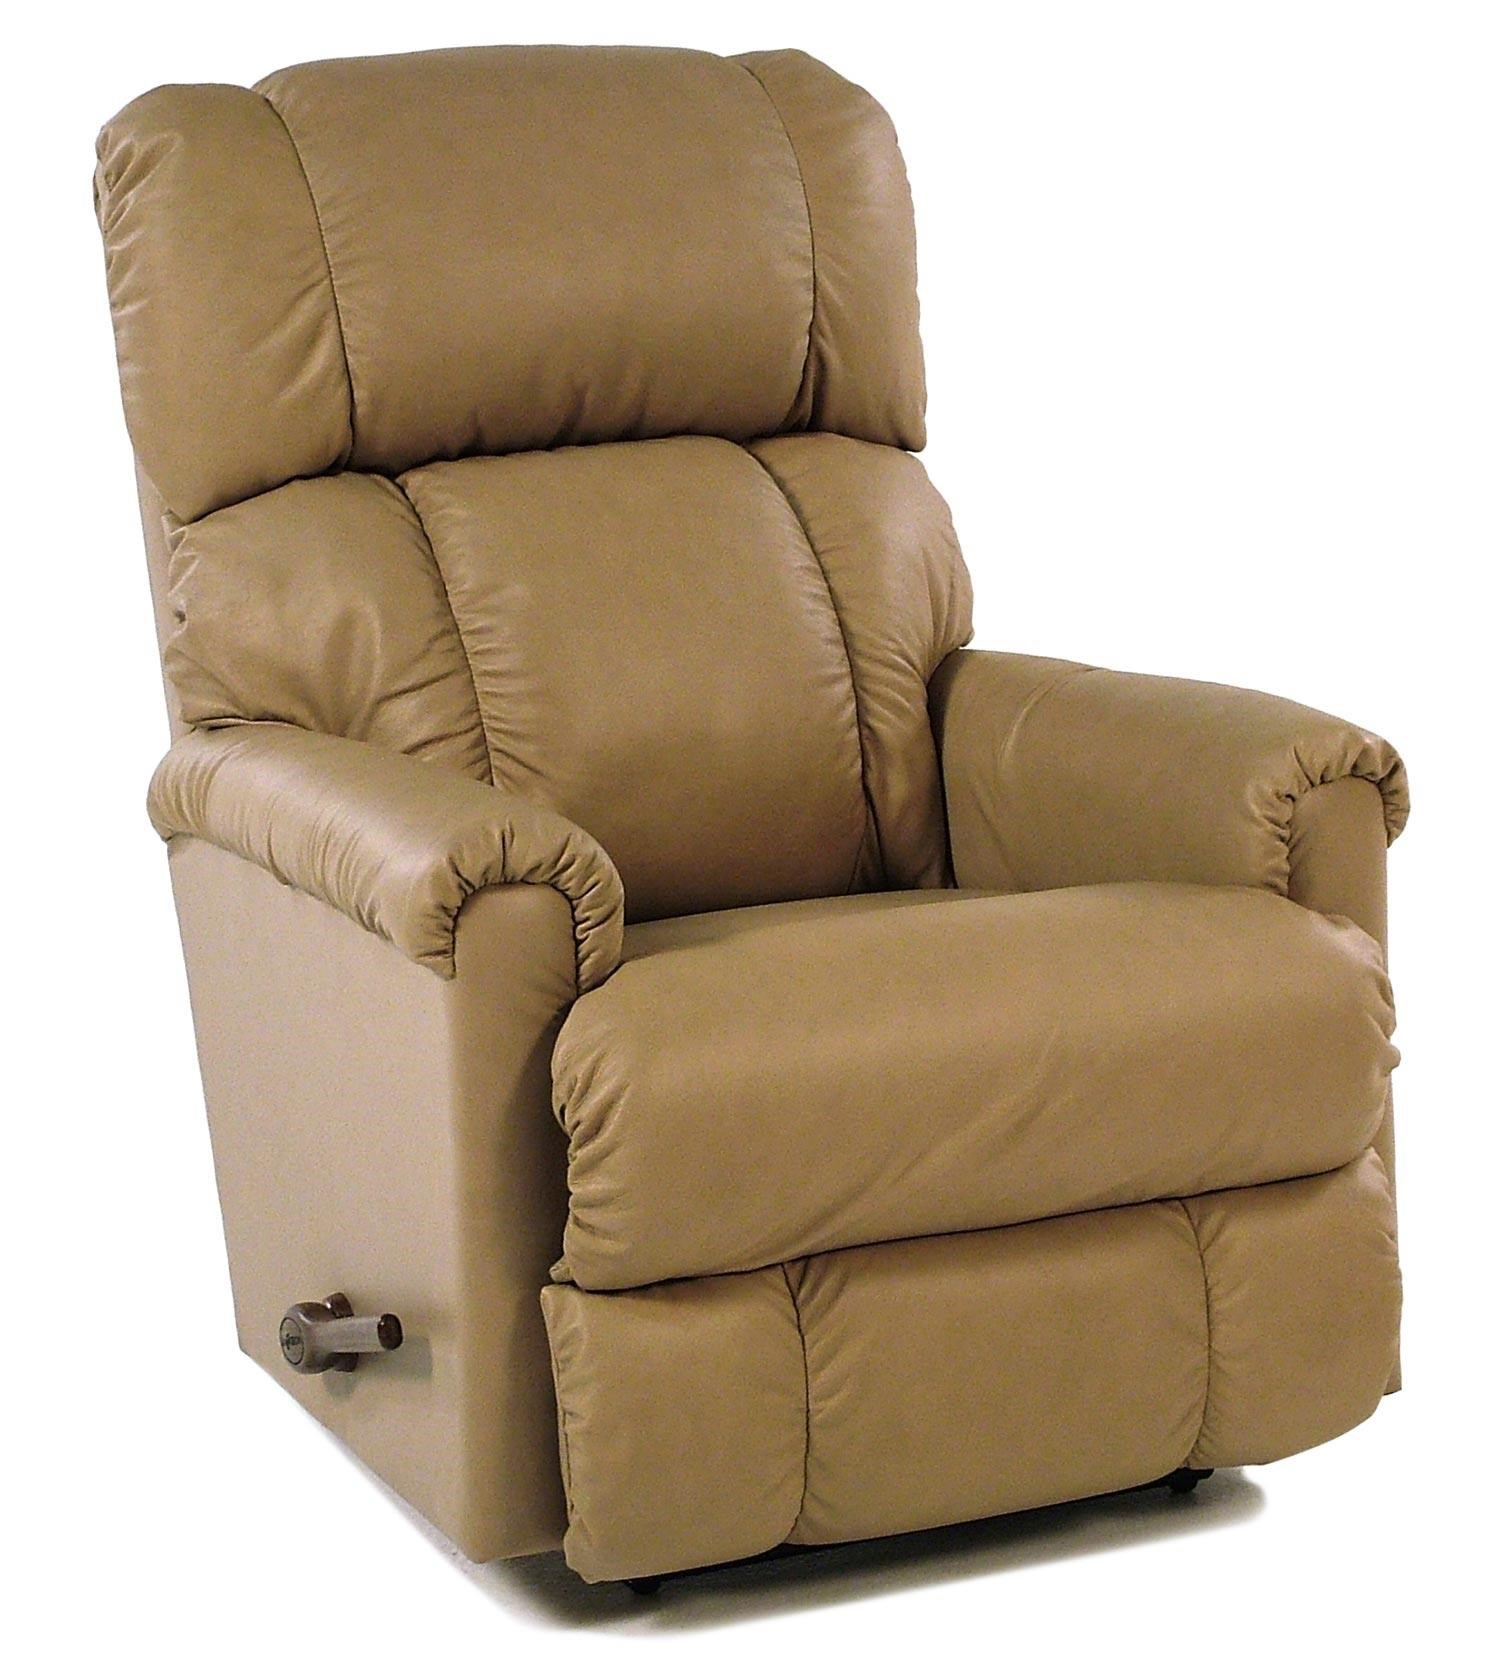 La-Z-Boy Pinnacle Reclina-Way® Reclining Chair  sc 1 st  Rotmans & La-Z-Boy Pinnacle Reclina-Way® Reclining Chair - Rotmans - Three ... islam-shia.org